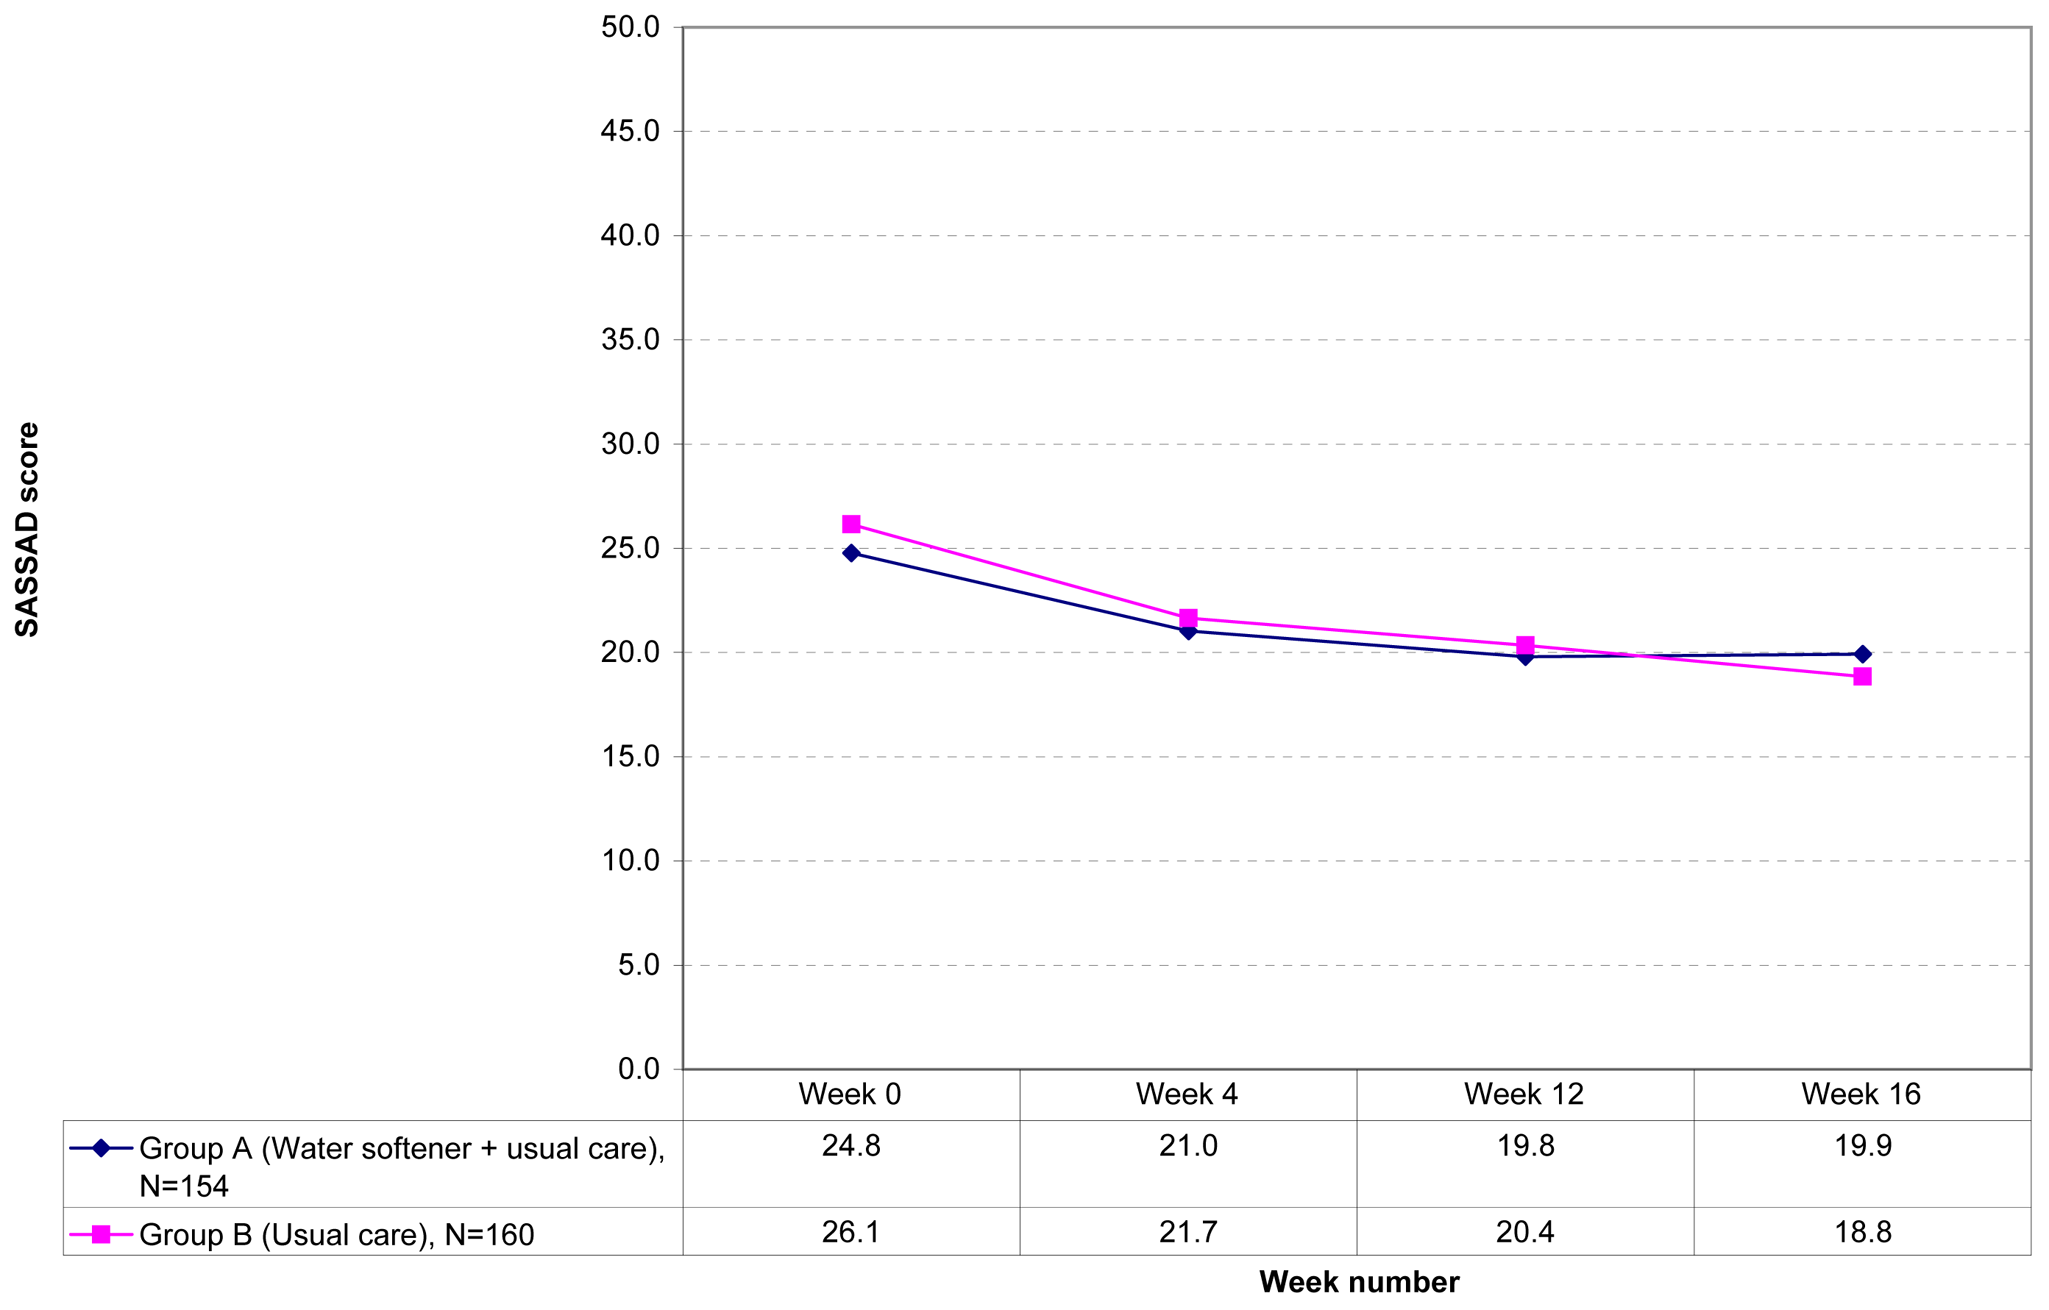 SASSAD scores during observational period (weeks 0 to 16).